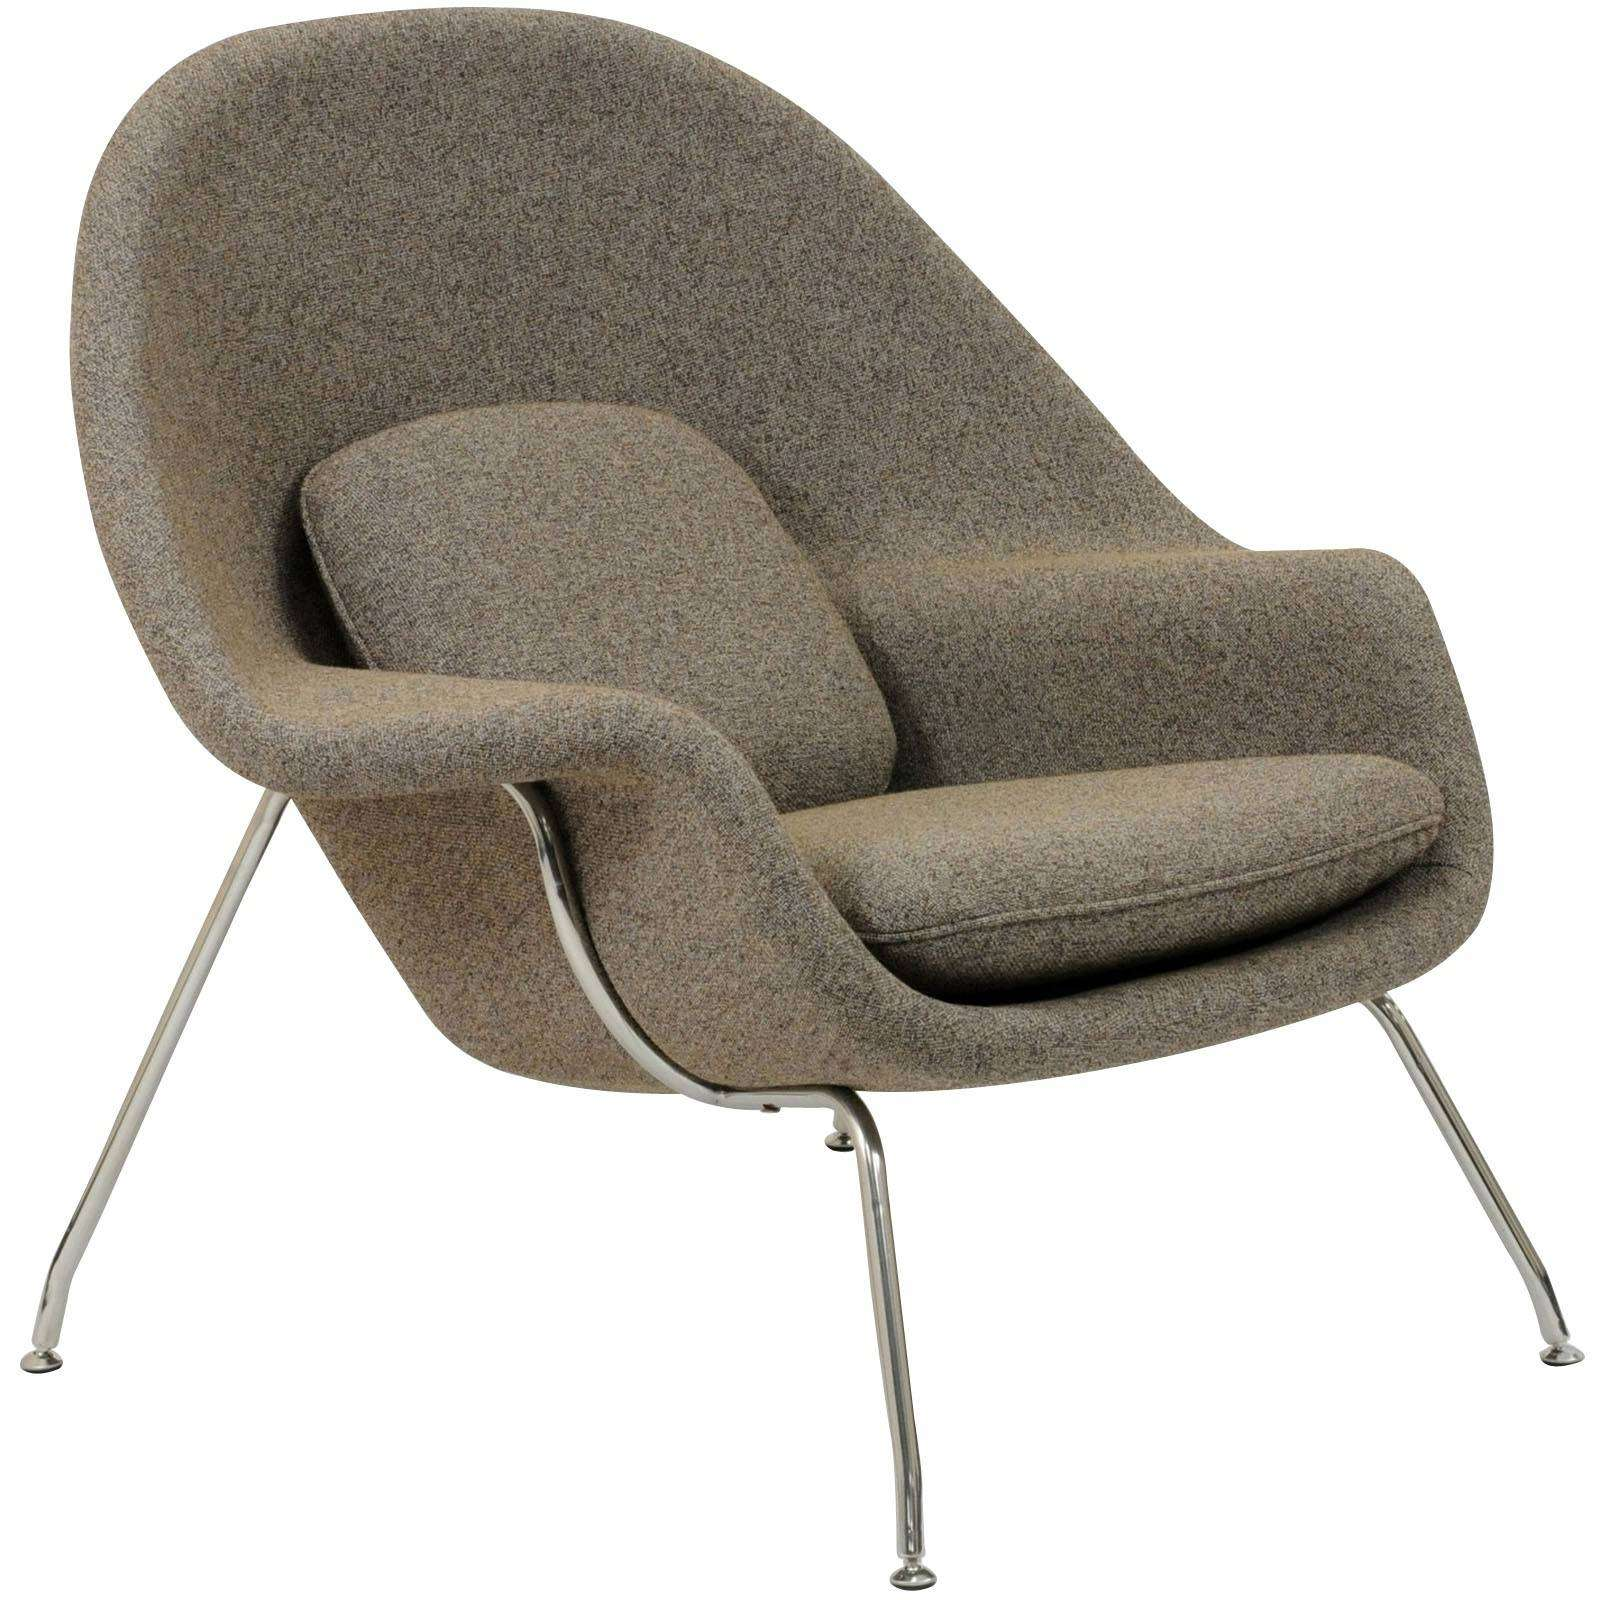 Womb Chair Saarinen Lounge Ottoman